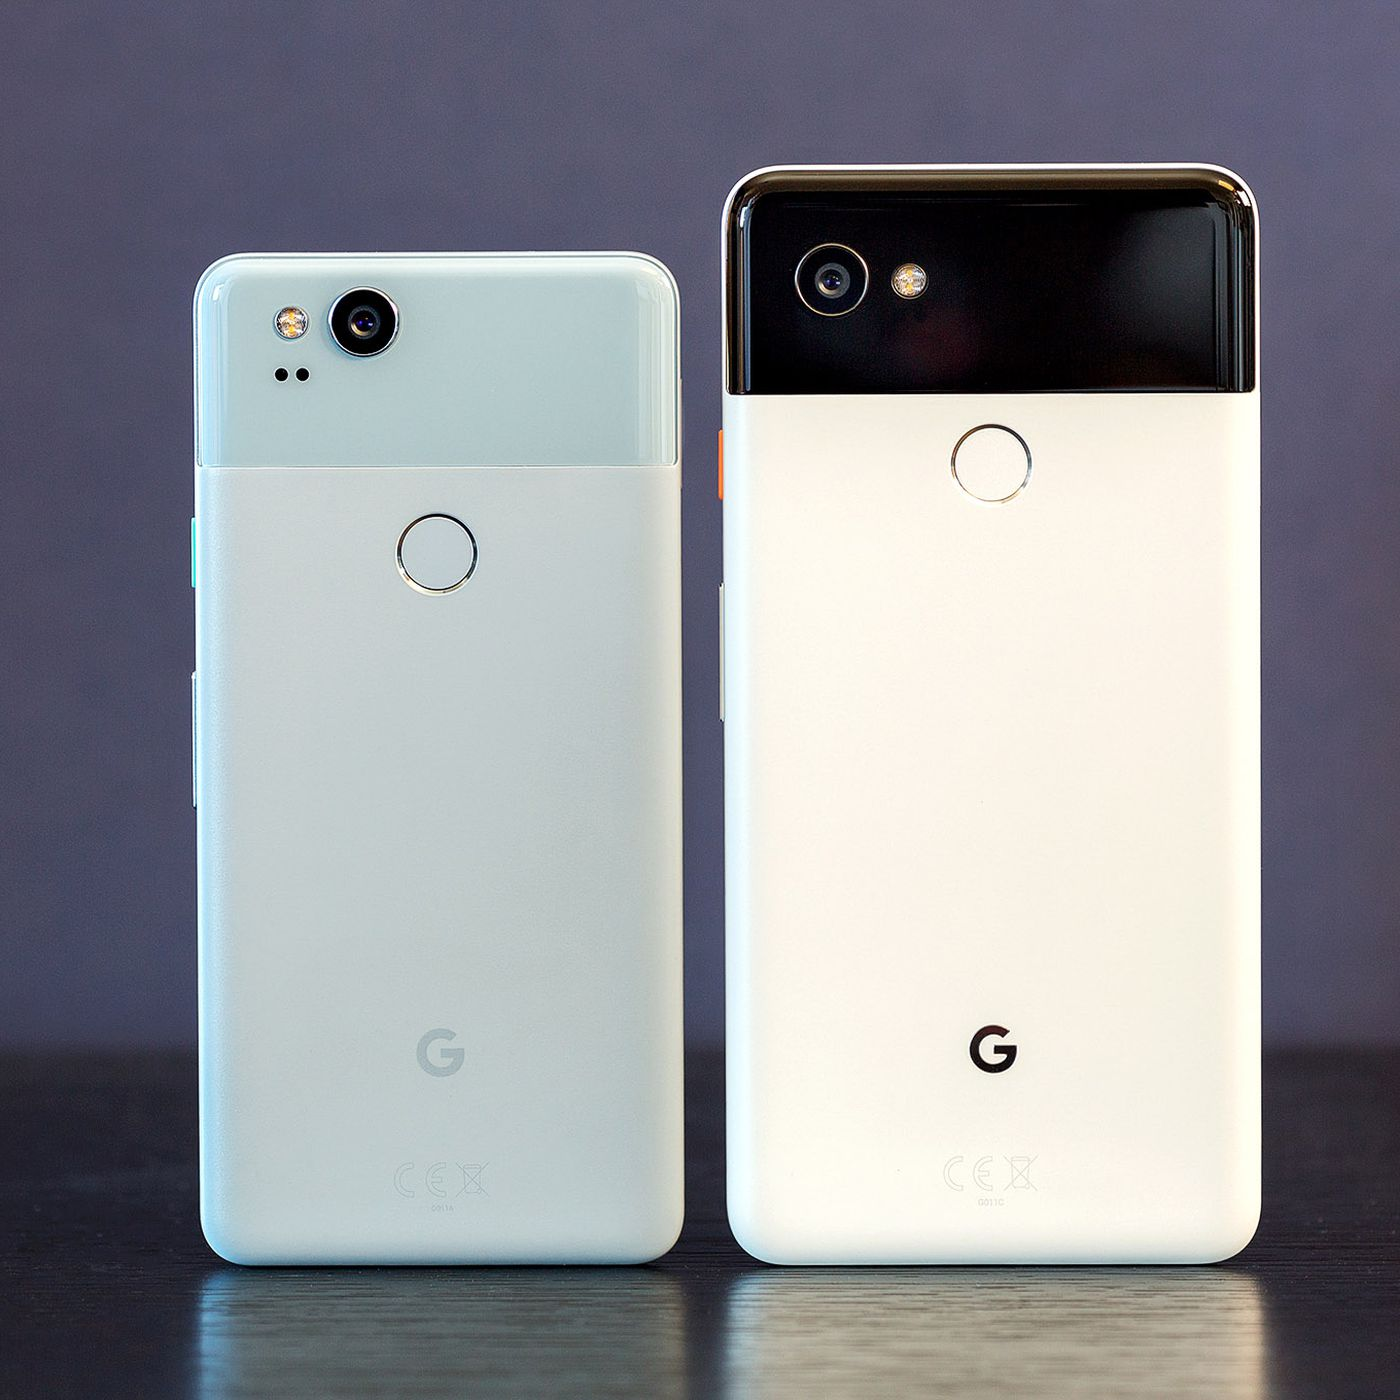 3 best and worst features of the Google Pixel 2 and Pixel 2 XL ...